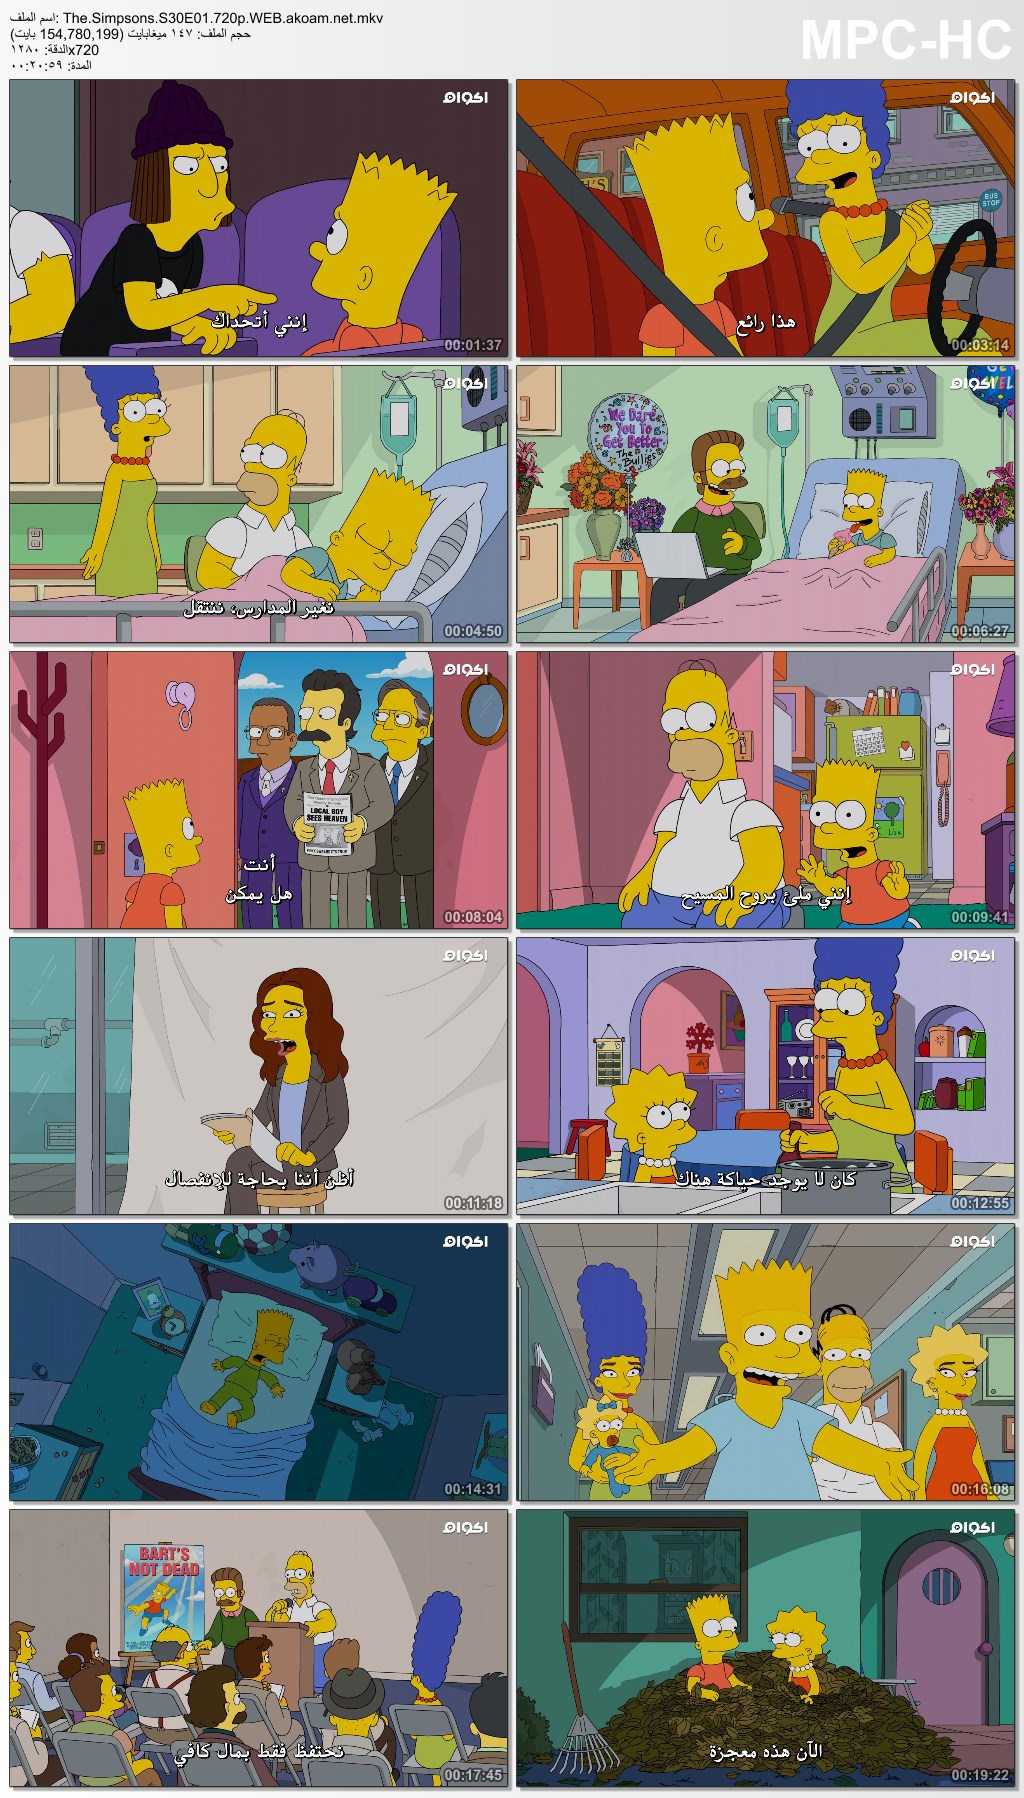 الكوميديا,The Simpsons,The Simpsons season 30,سيمبسون